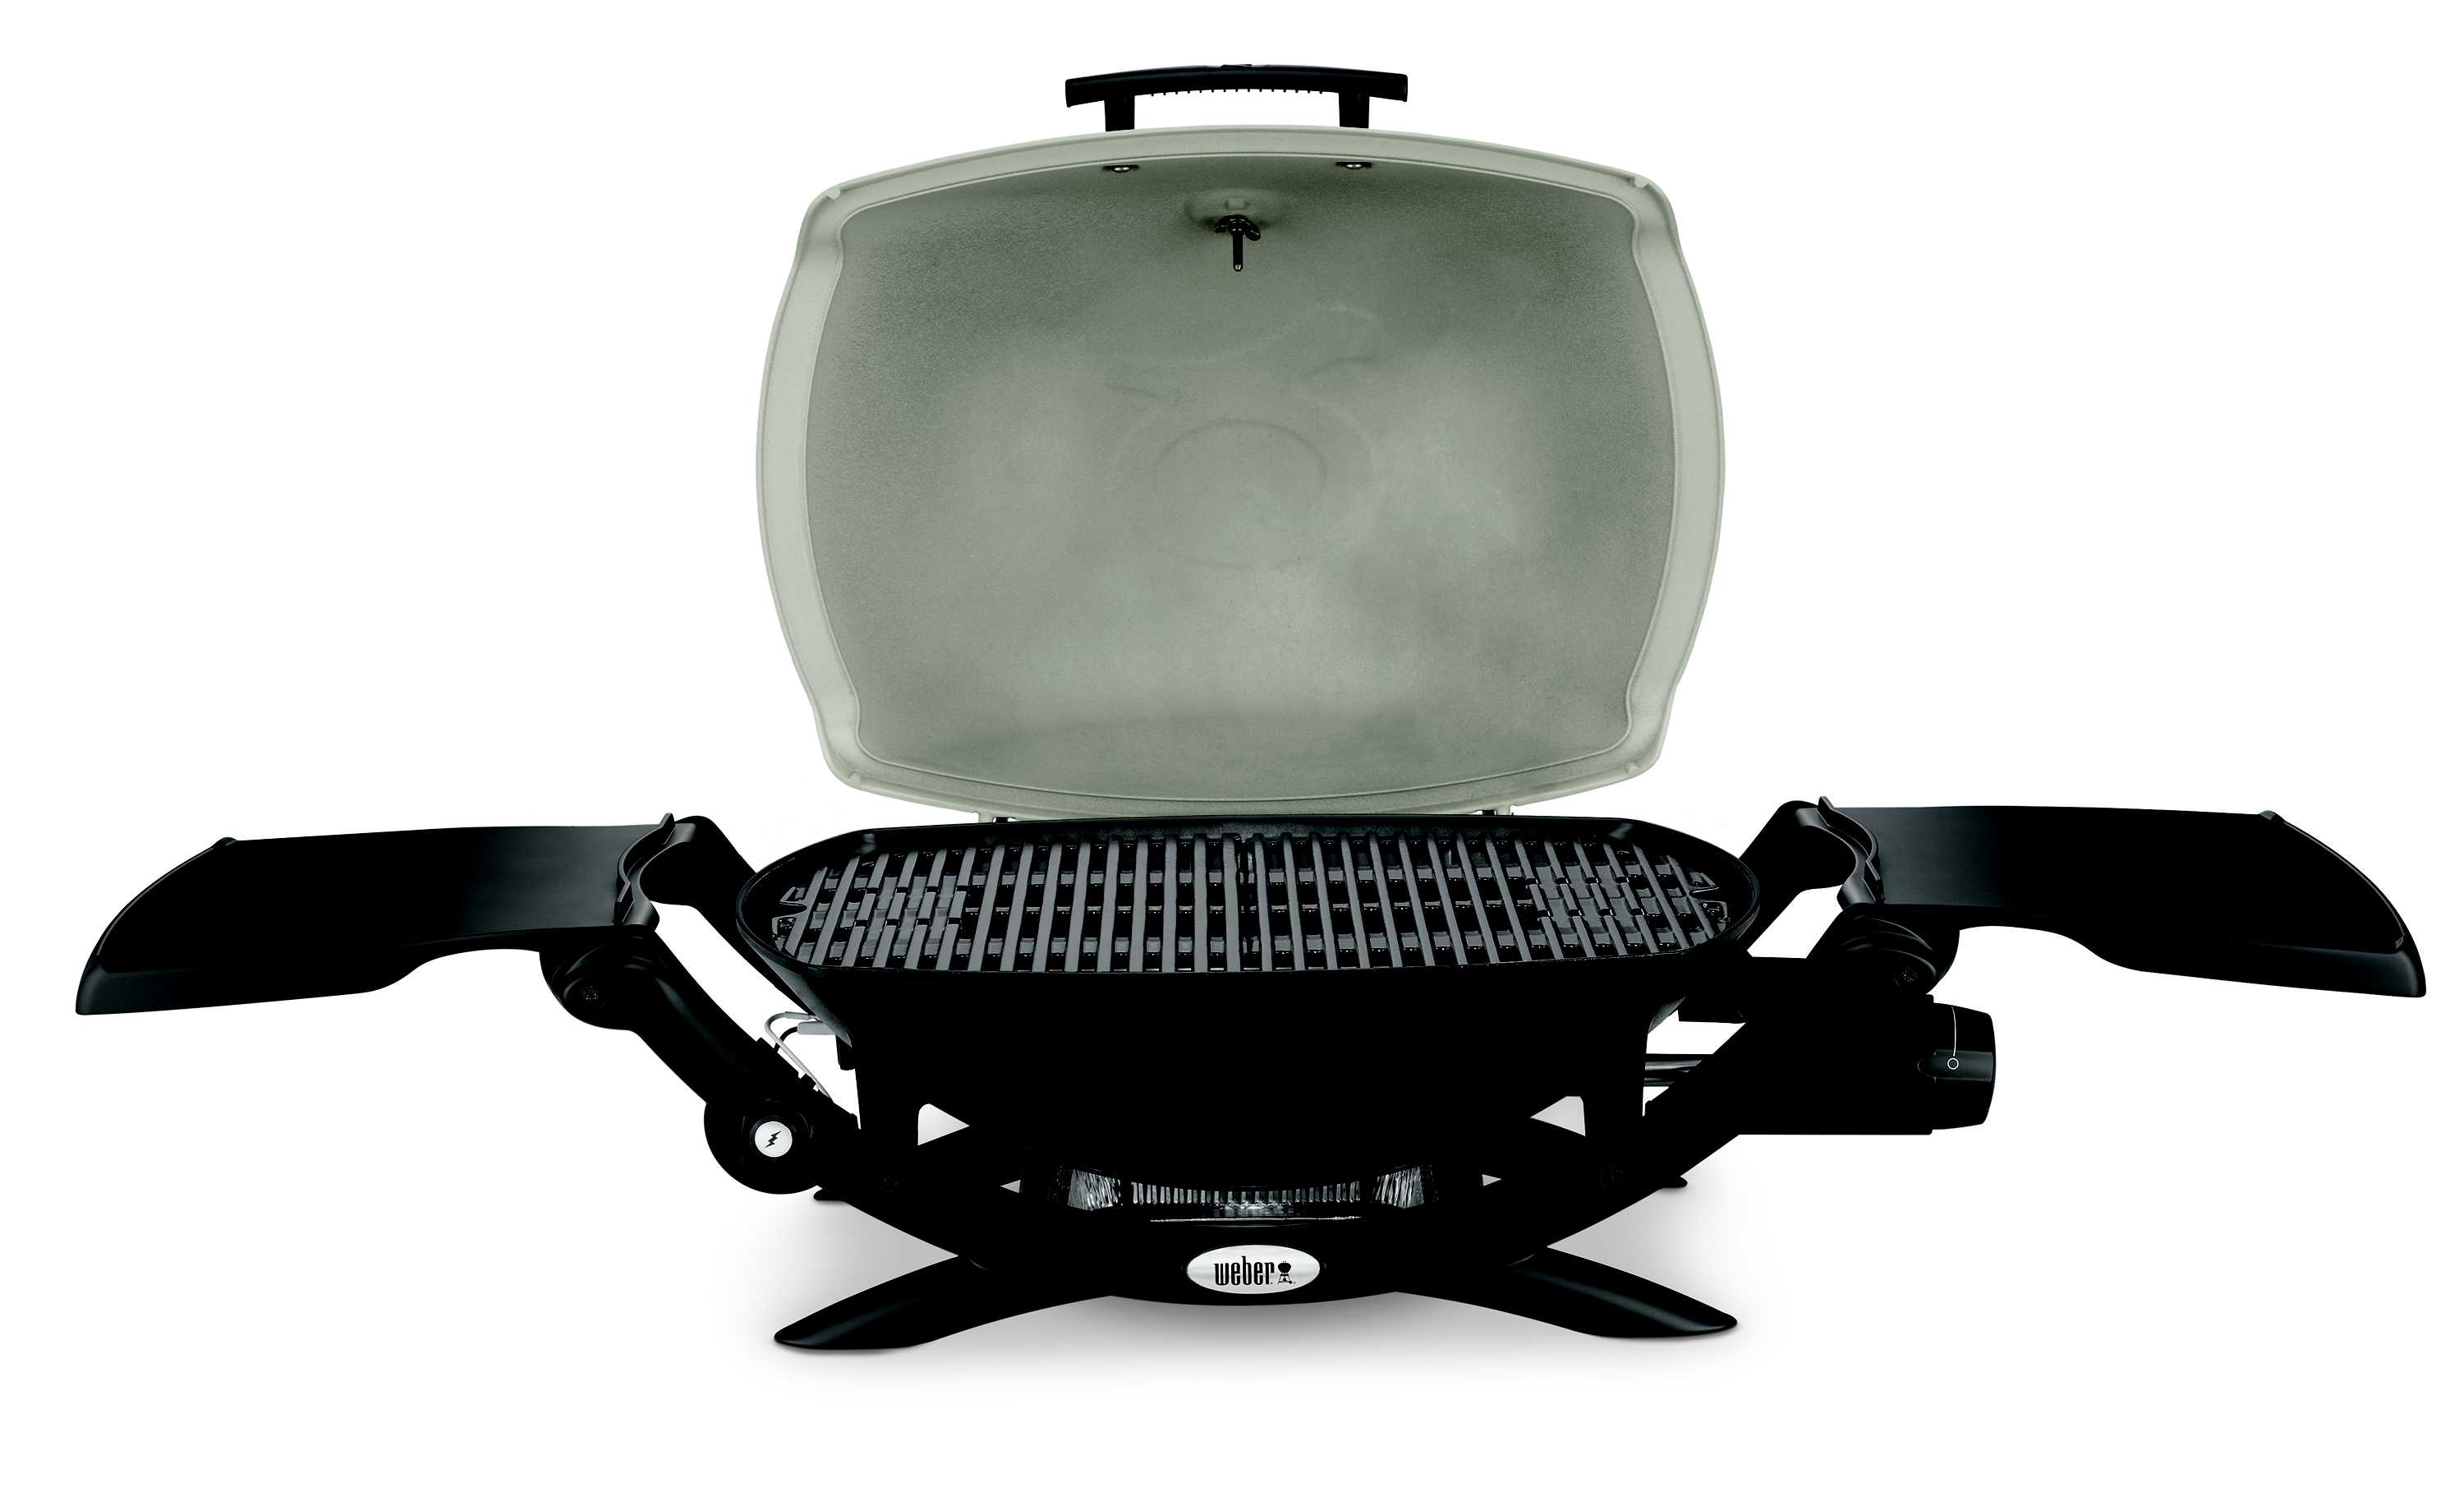 Image result for Benefits Of Buying A Portable Gas Grills for Camping